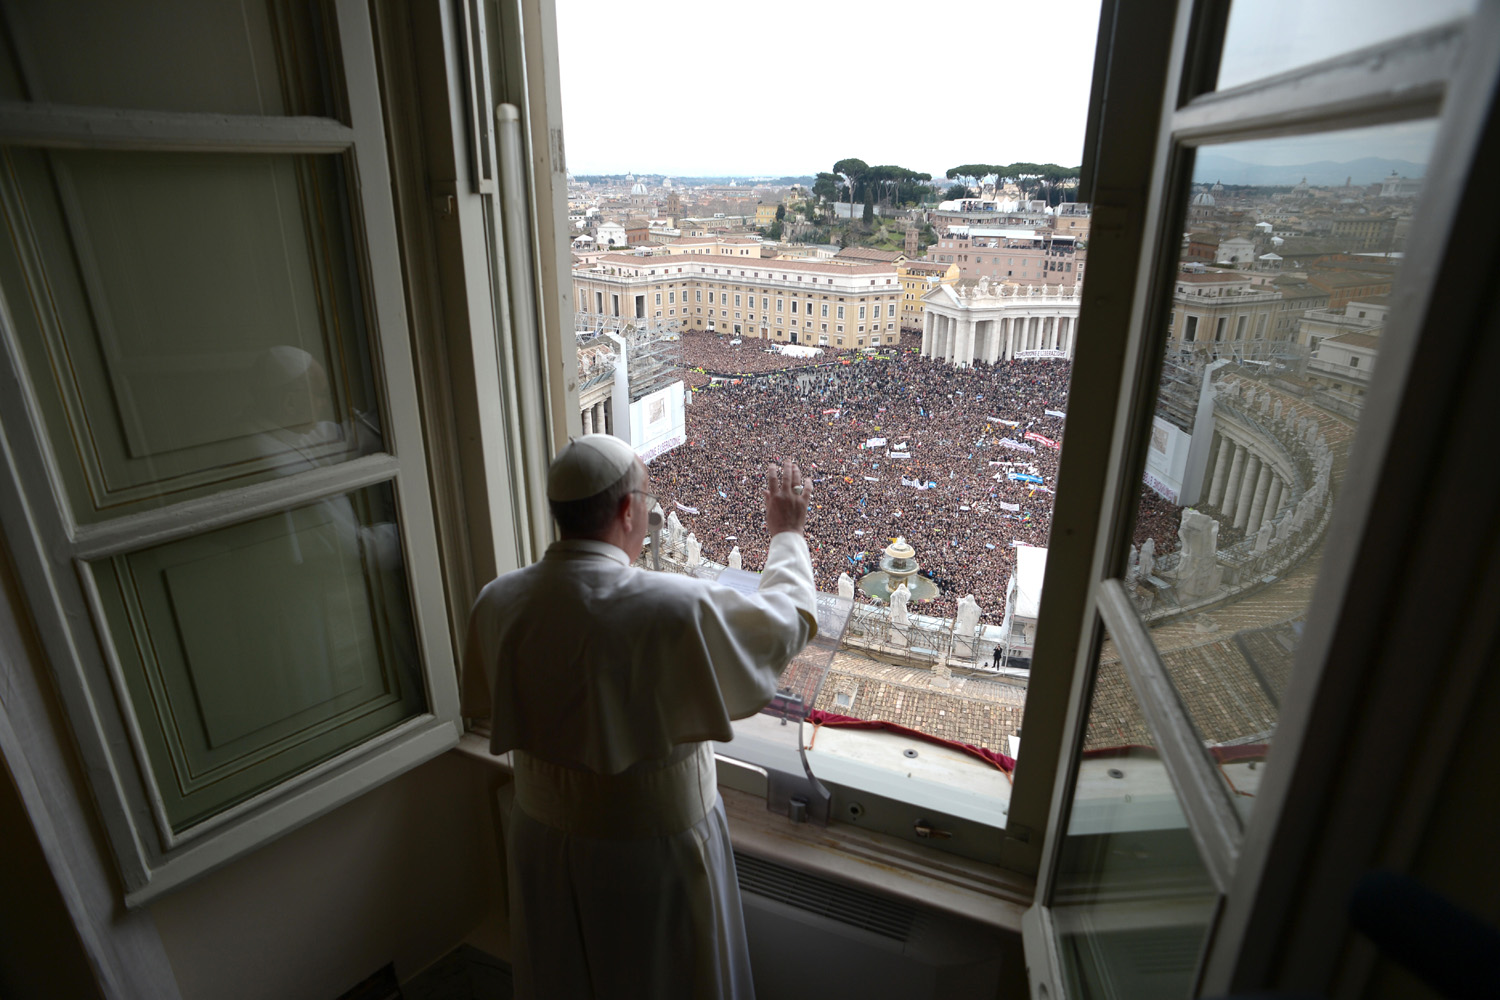 March 17, 2013. Pope Francis leads his first Angelus Prayer and blessing from the studio of his private apartment at the Vatican.